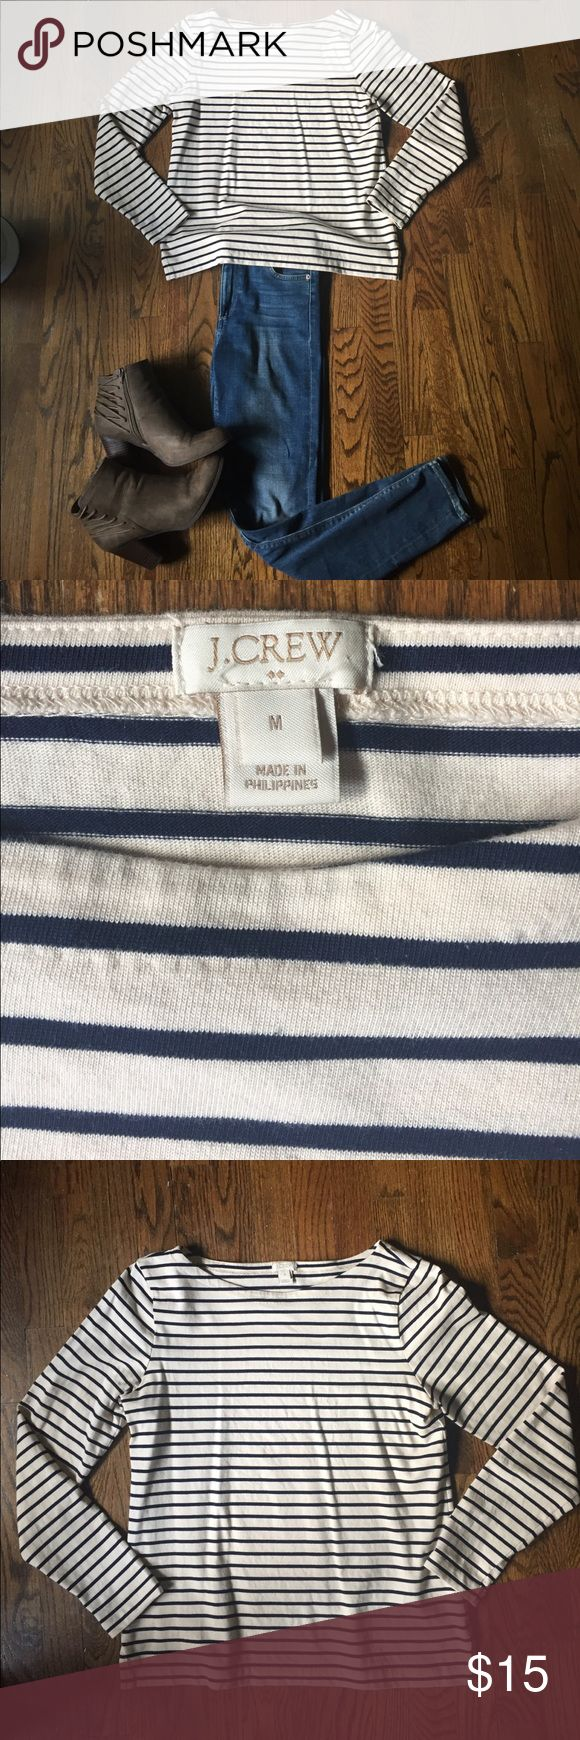 J. Crew Striped Boatneck Navy & cream striped J. Crew boatneck cotton shirt! About 2 in slits on either side of the body and long sleeves. Only worn once, super cute and ready for a new home! J. Crew Tops Tees - Long Sleeve